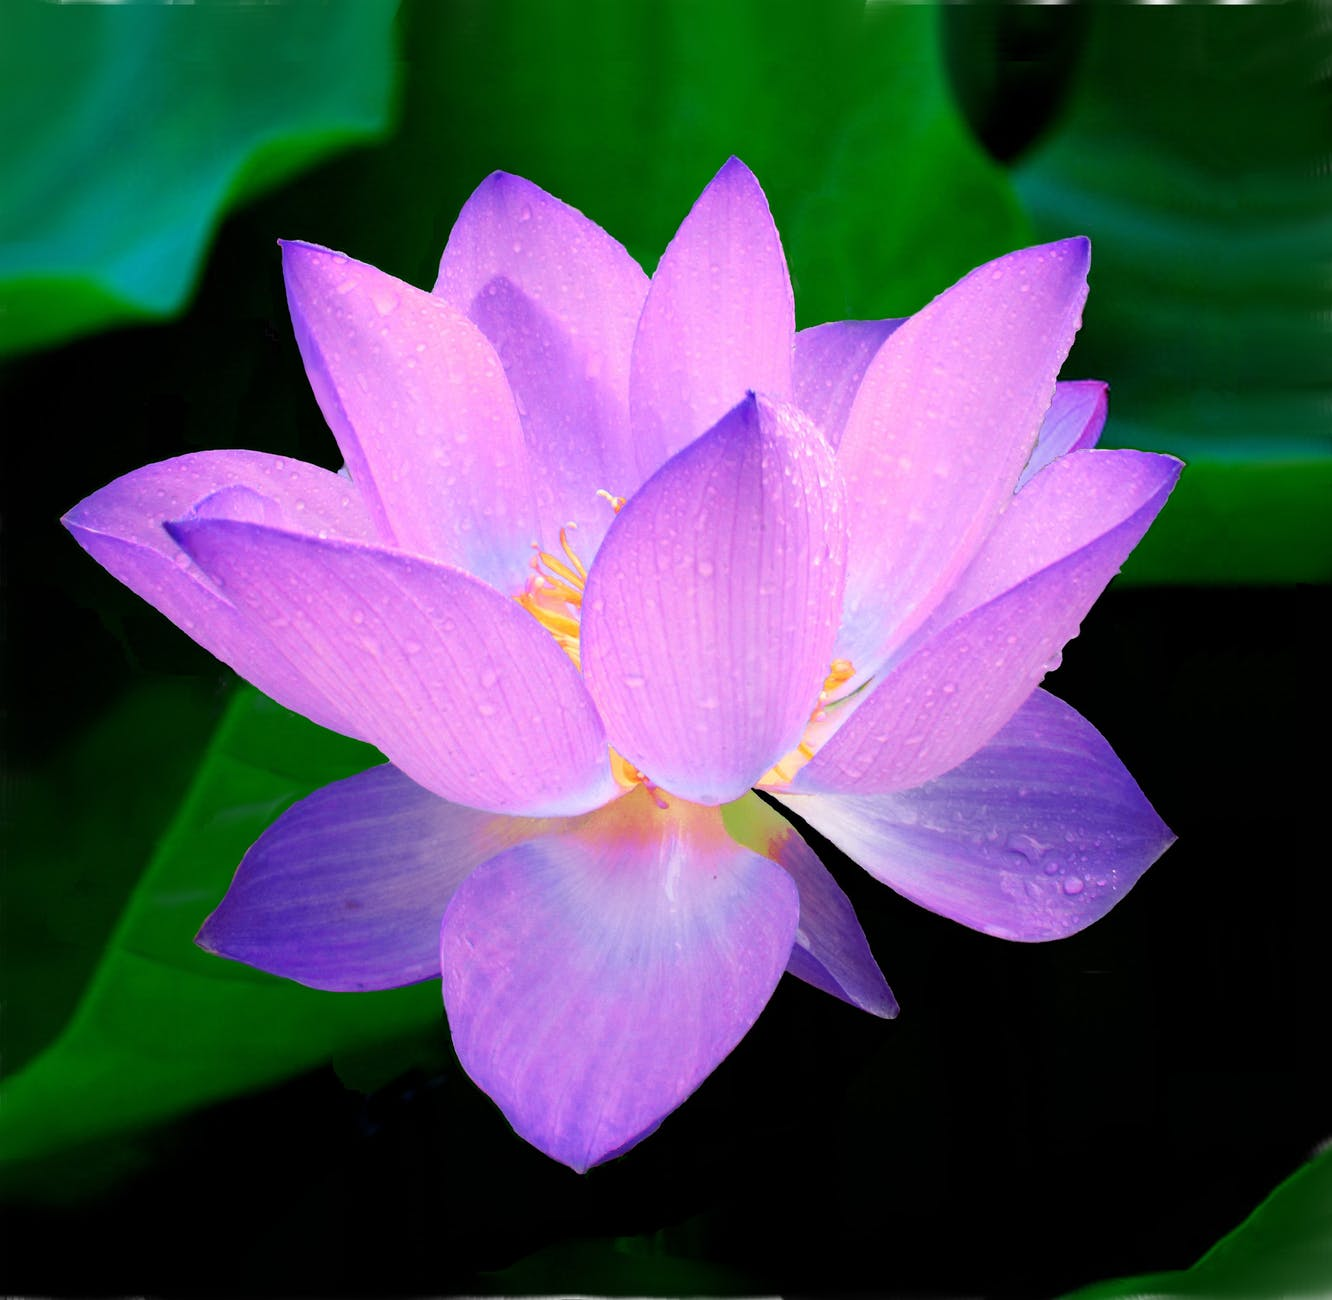 lotus-flower-nymphaea-caerulea-aquatic-plant-62681.jpeg